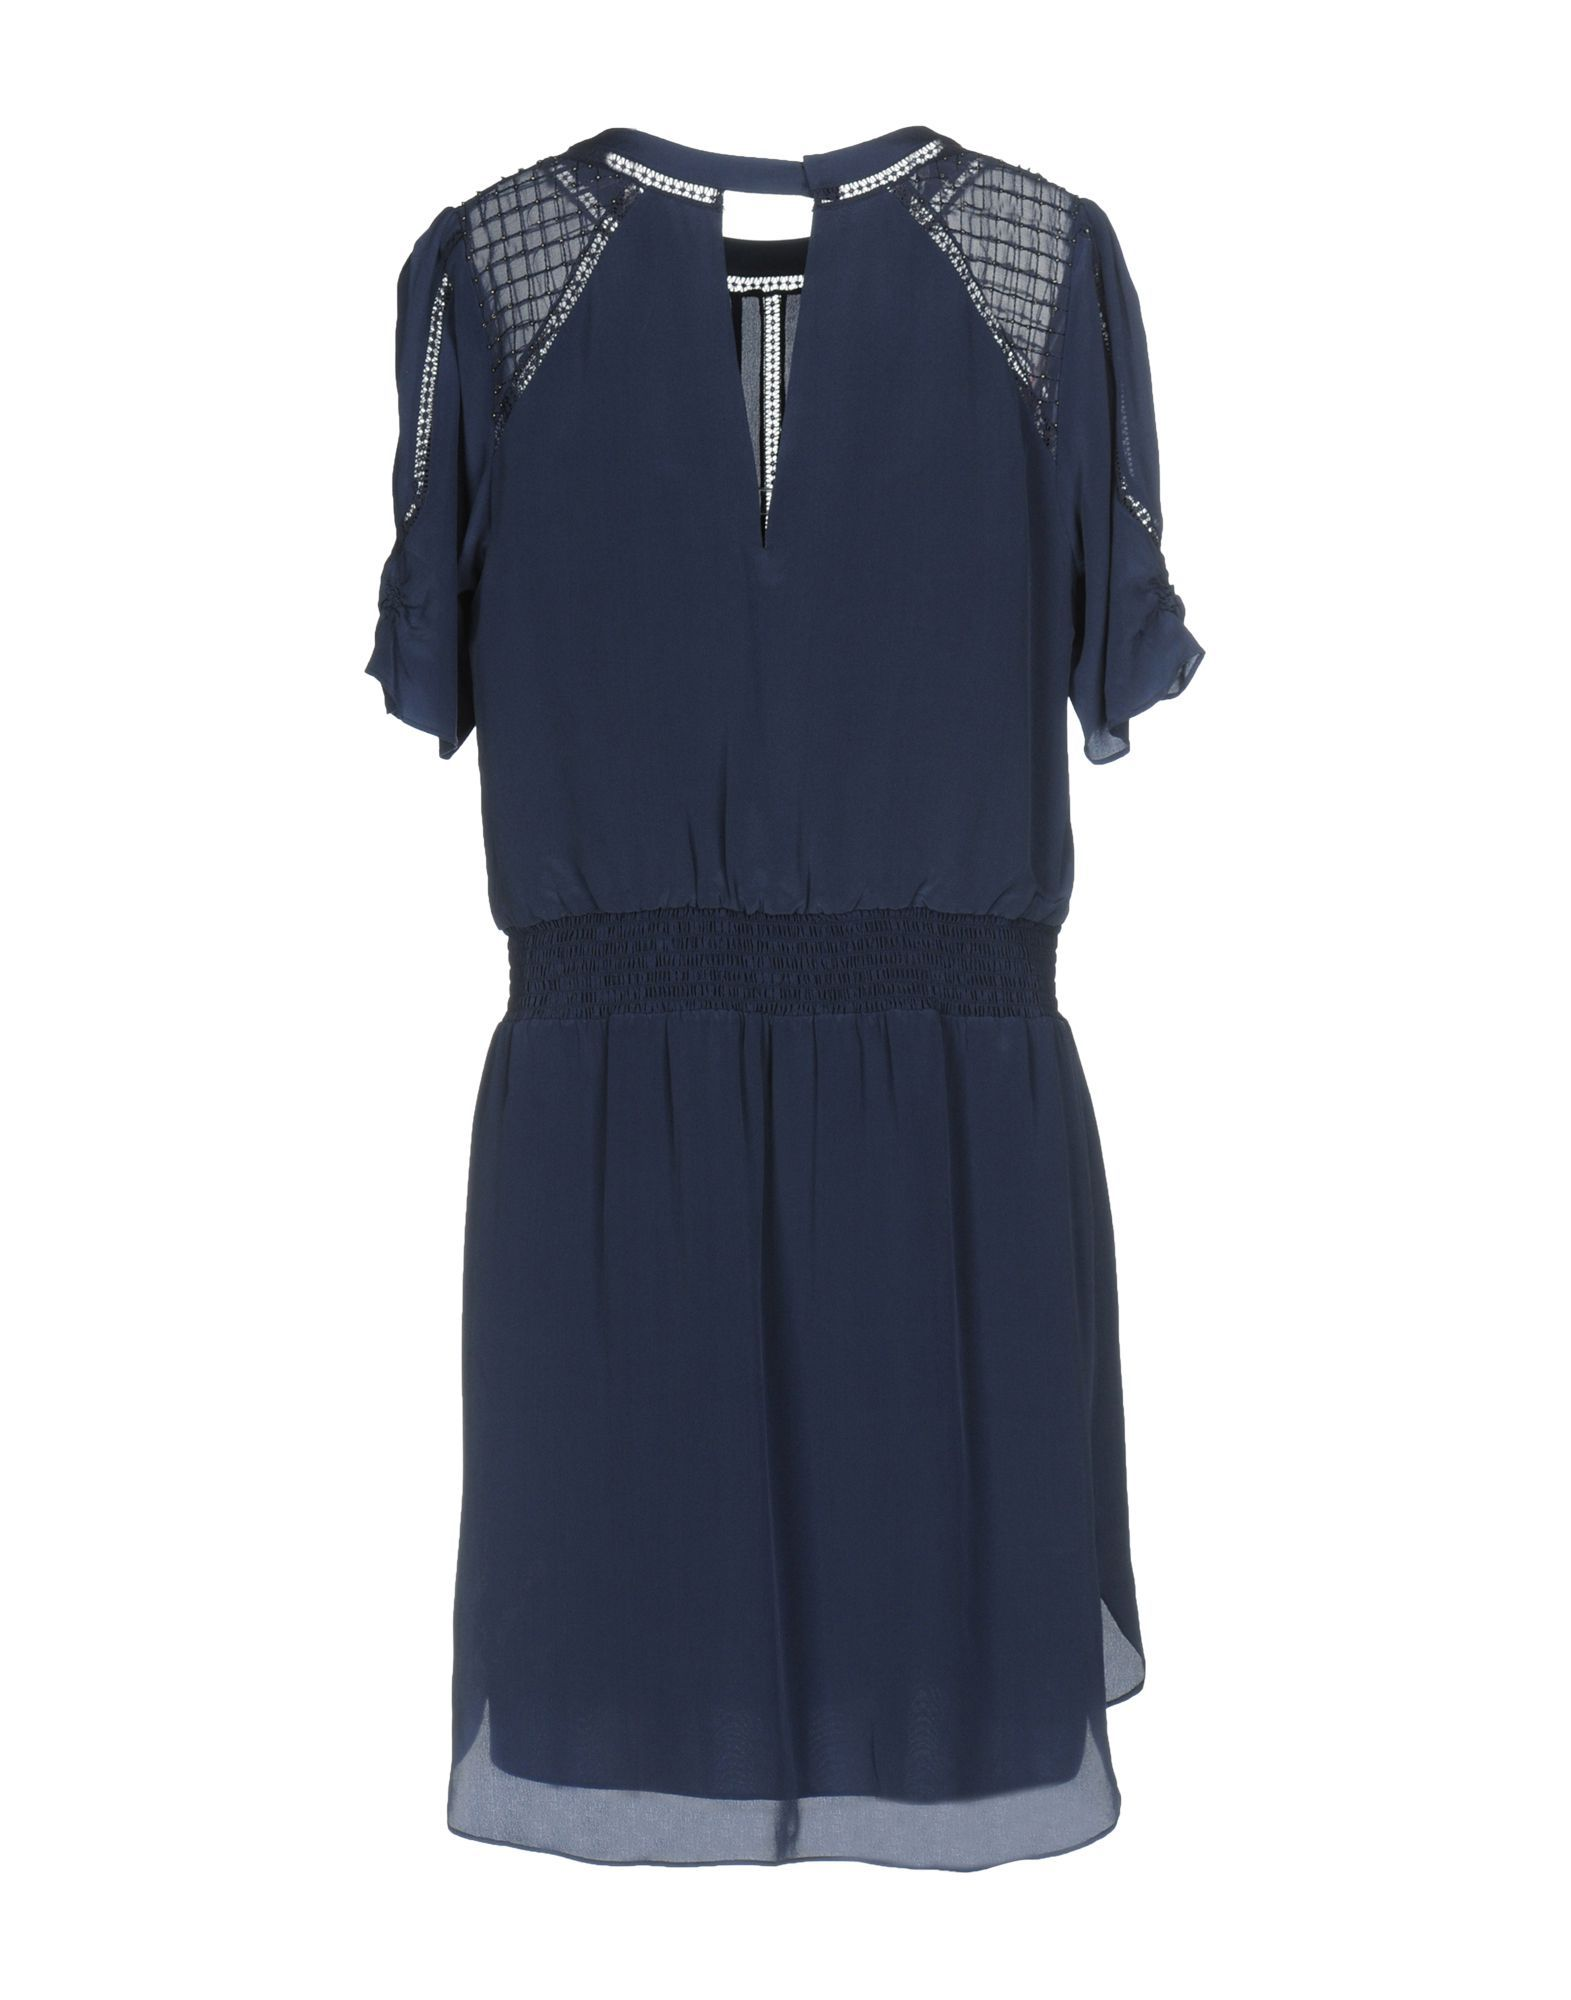 Karen Millen Dark Blue Silk Short Sleeve Dress